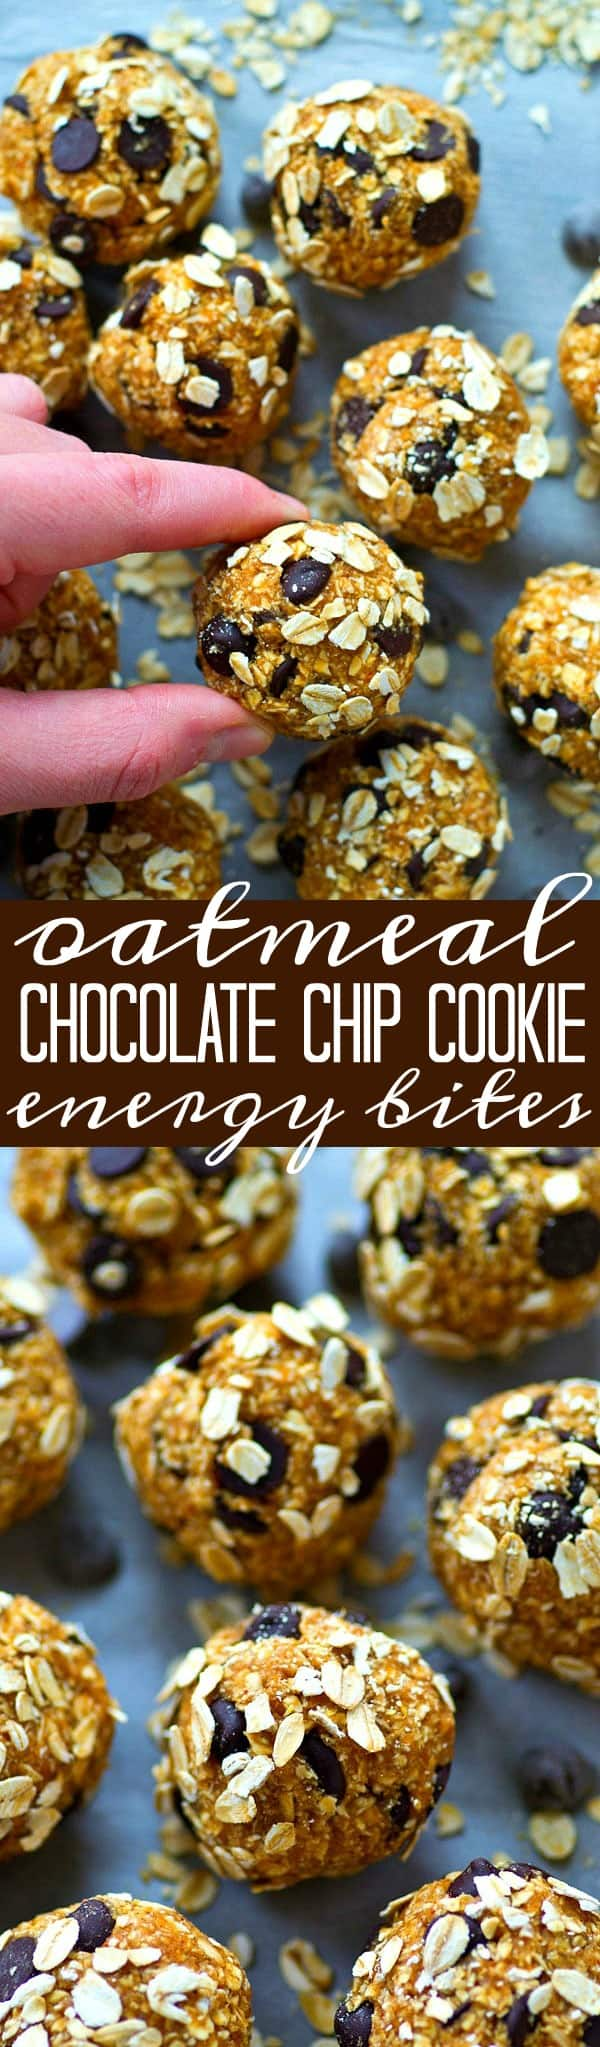 Everything you love about oatmeal chocolate chip cookies are wrapped up in these healthy and nutrition-packed energy bites! Make them in minutes with only a handful of ingredients.